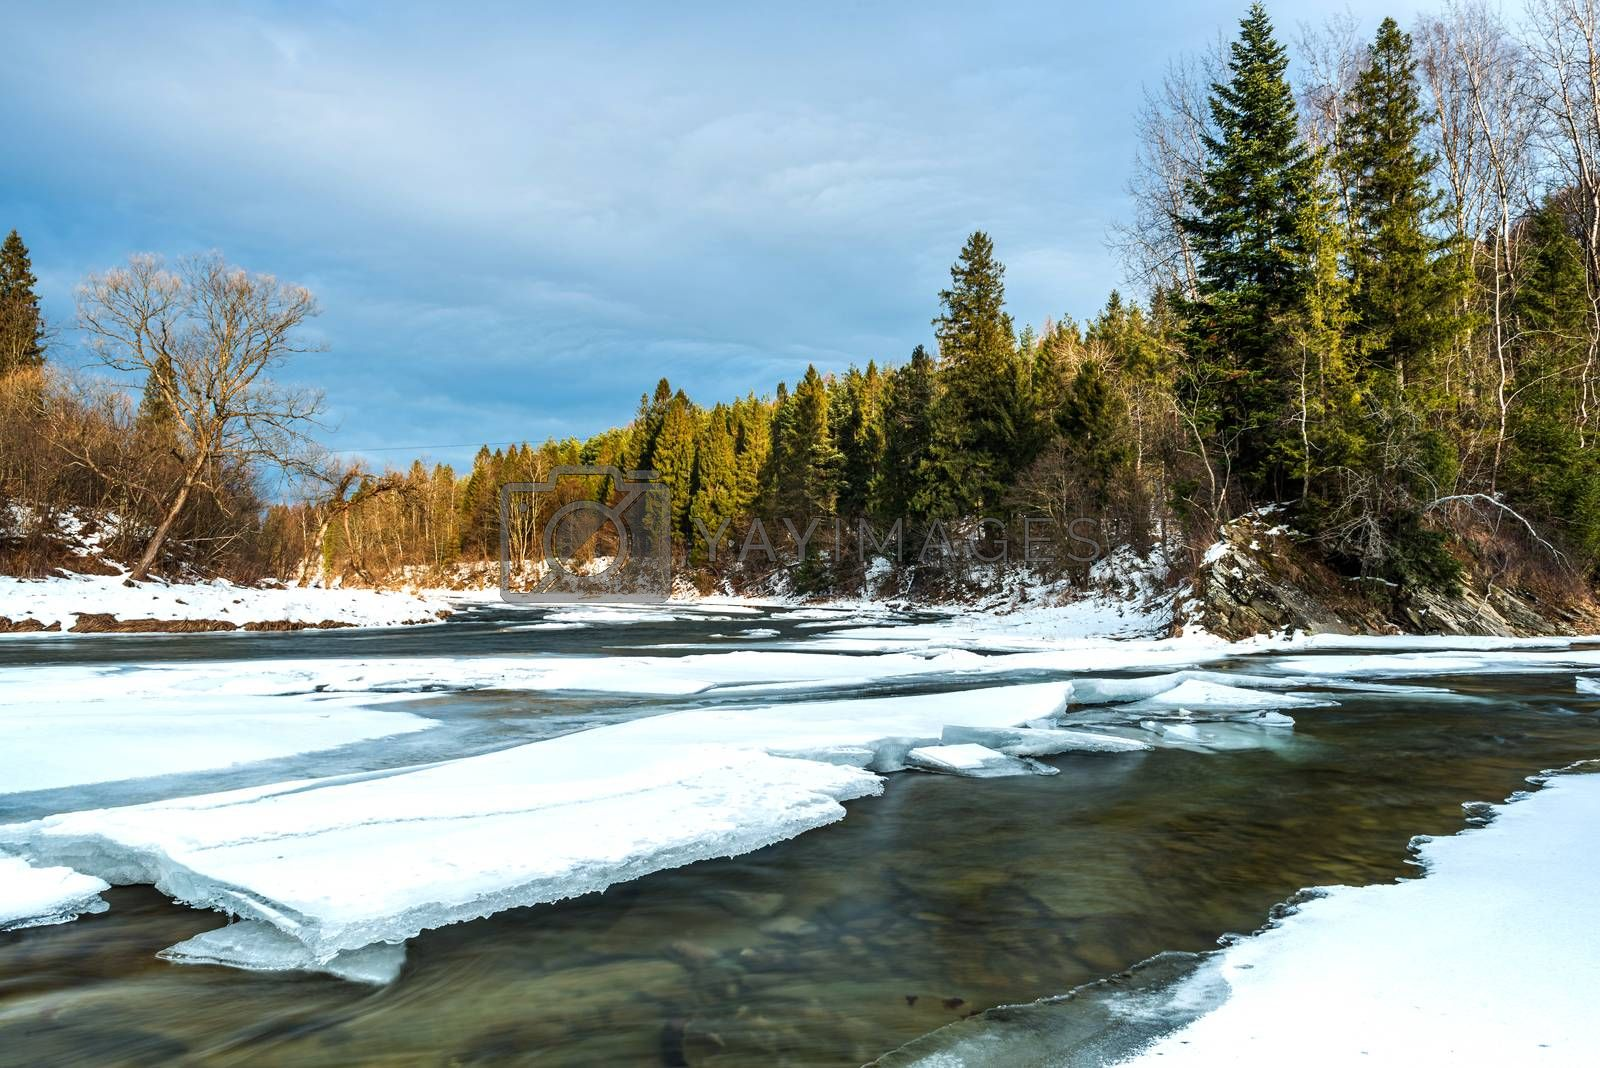 Ice over River San in Bieszczady Mountains at Winter Season by merc67